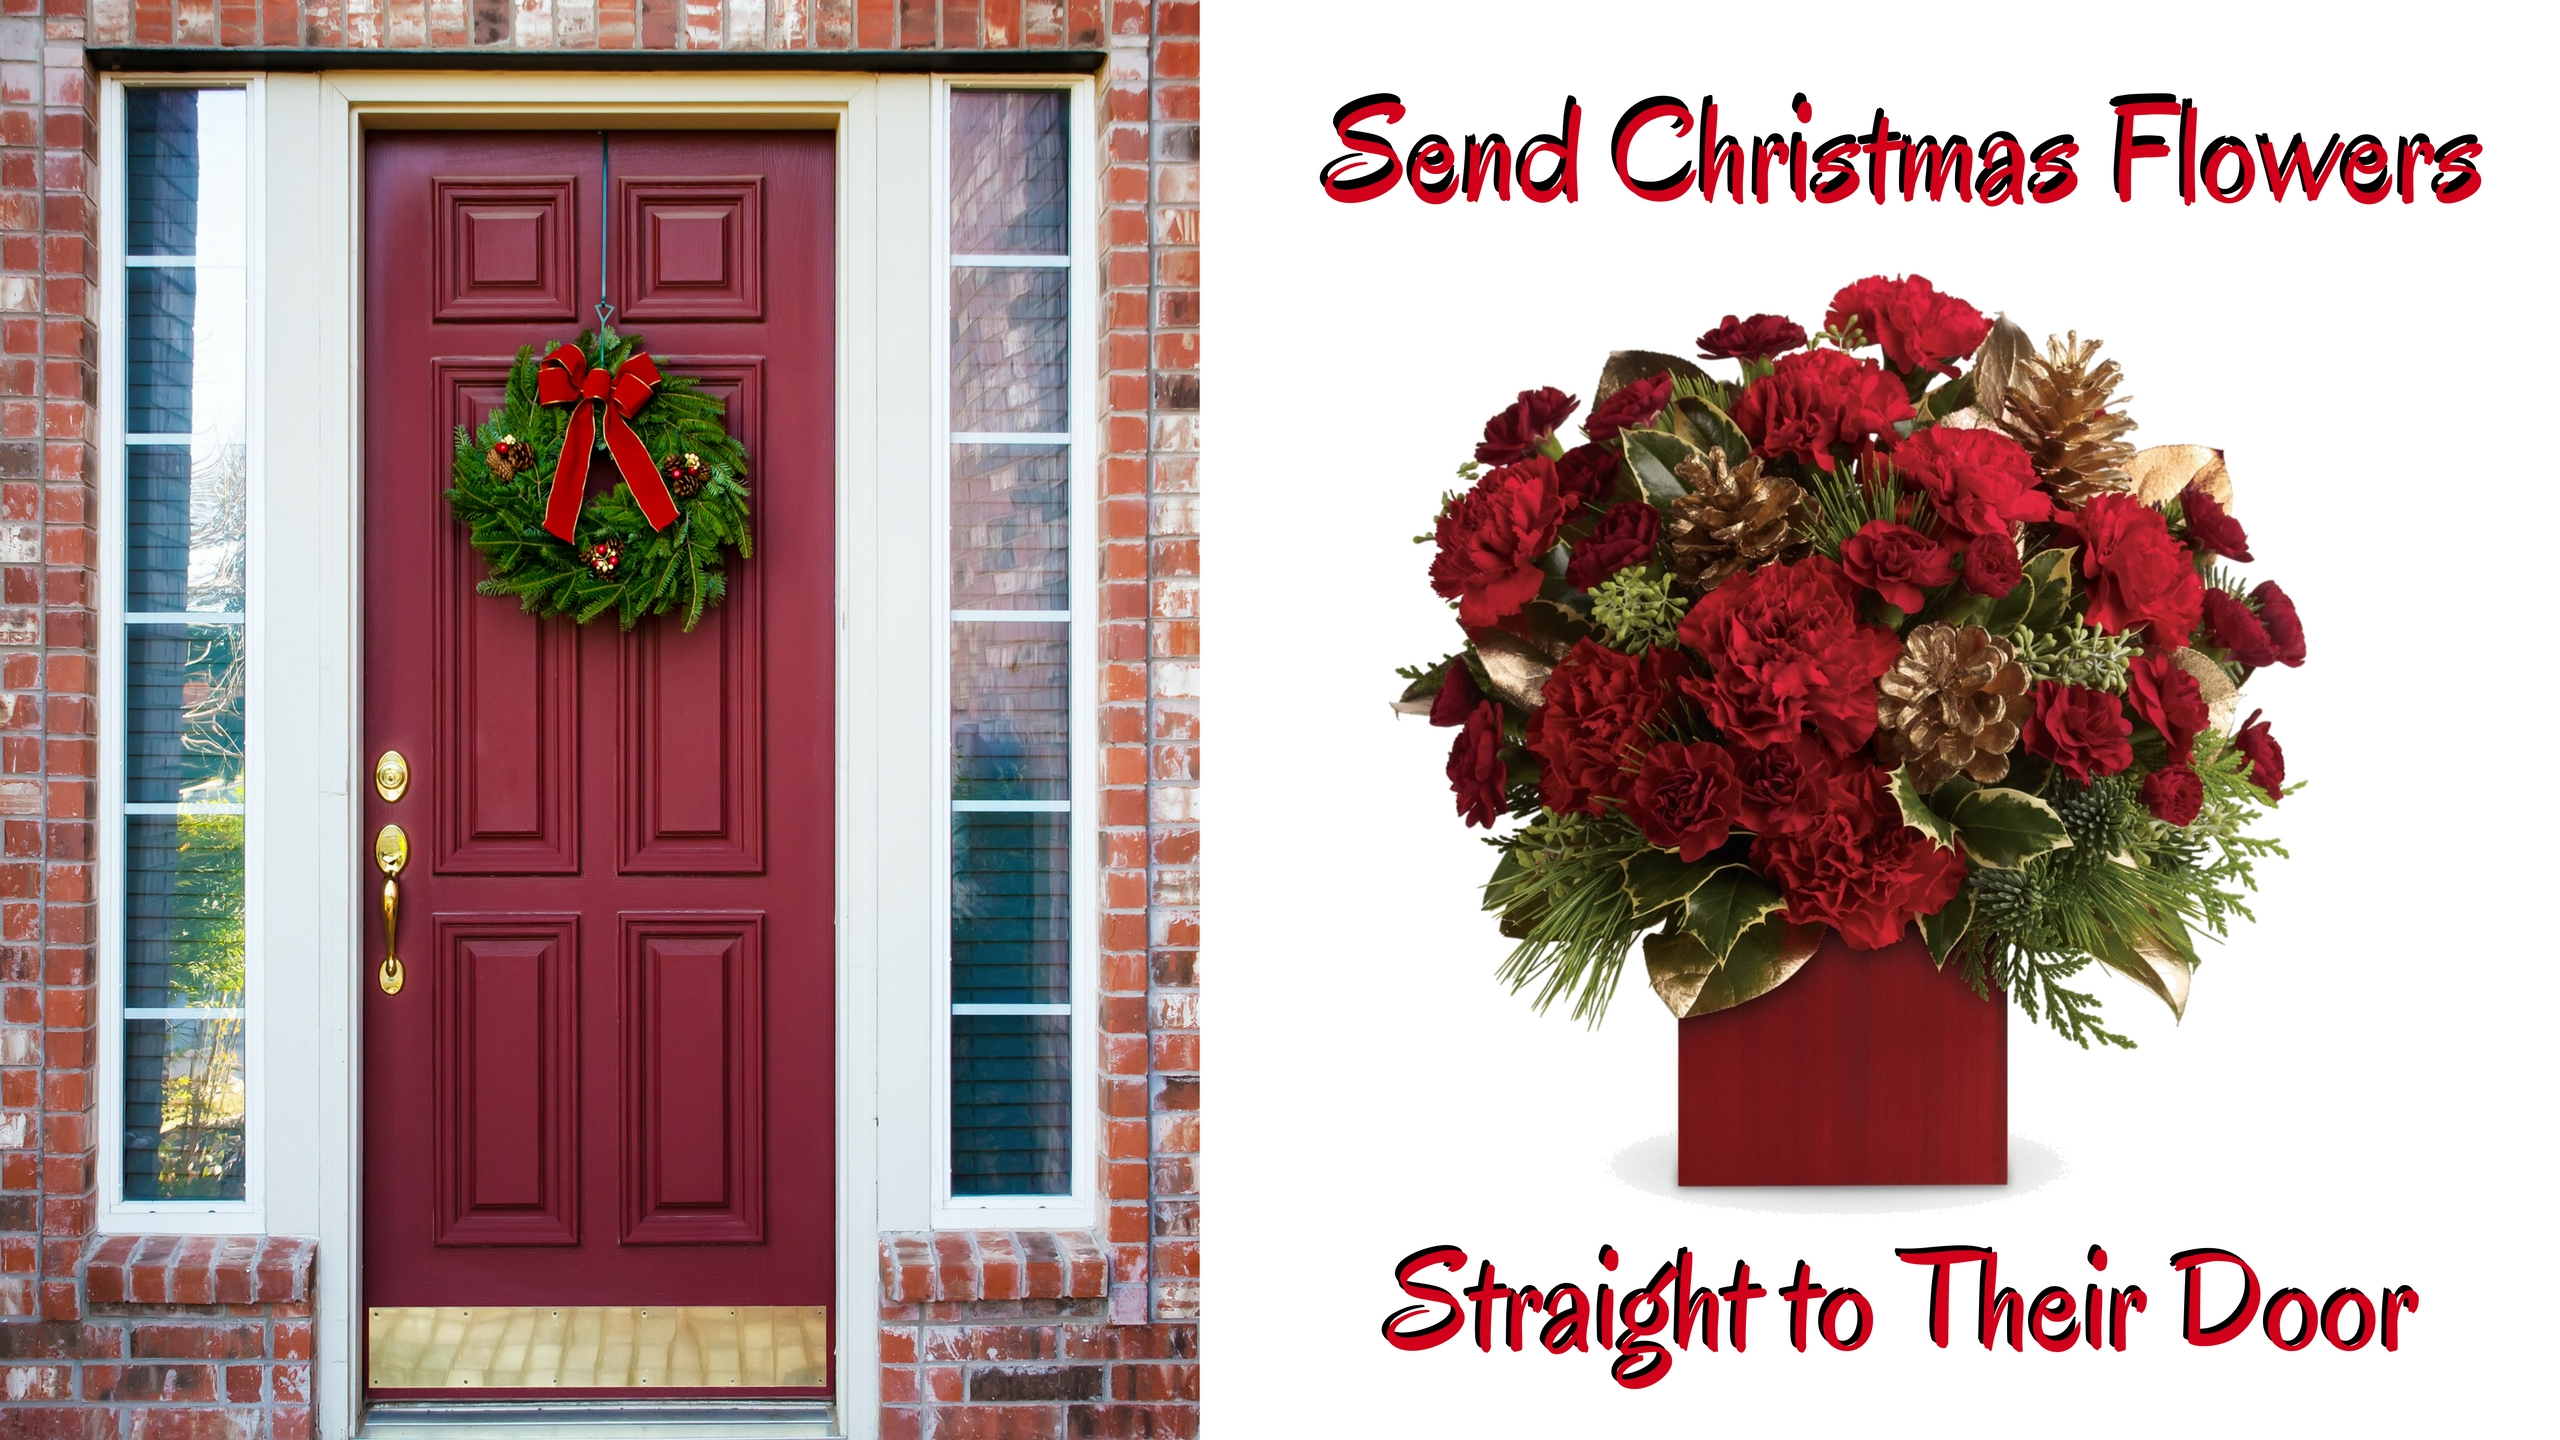 Tis The Season For Delivering Festive Christmas Floral